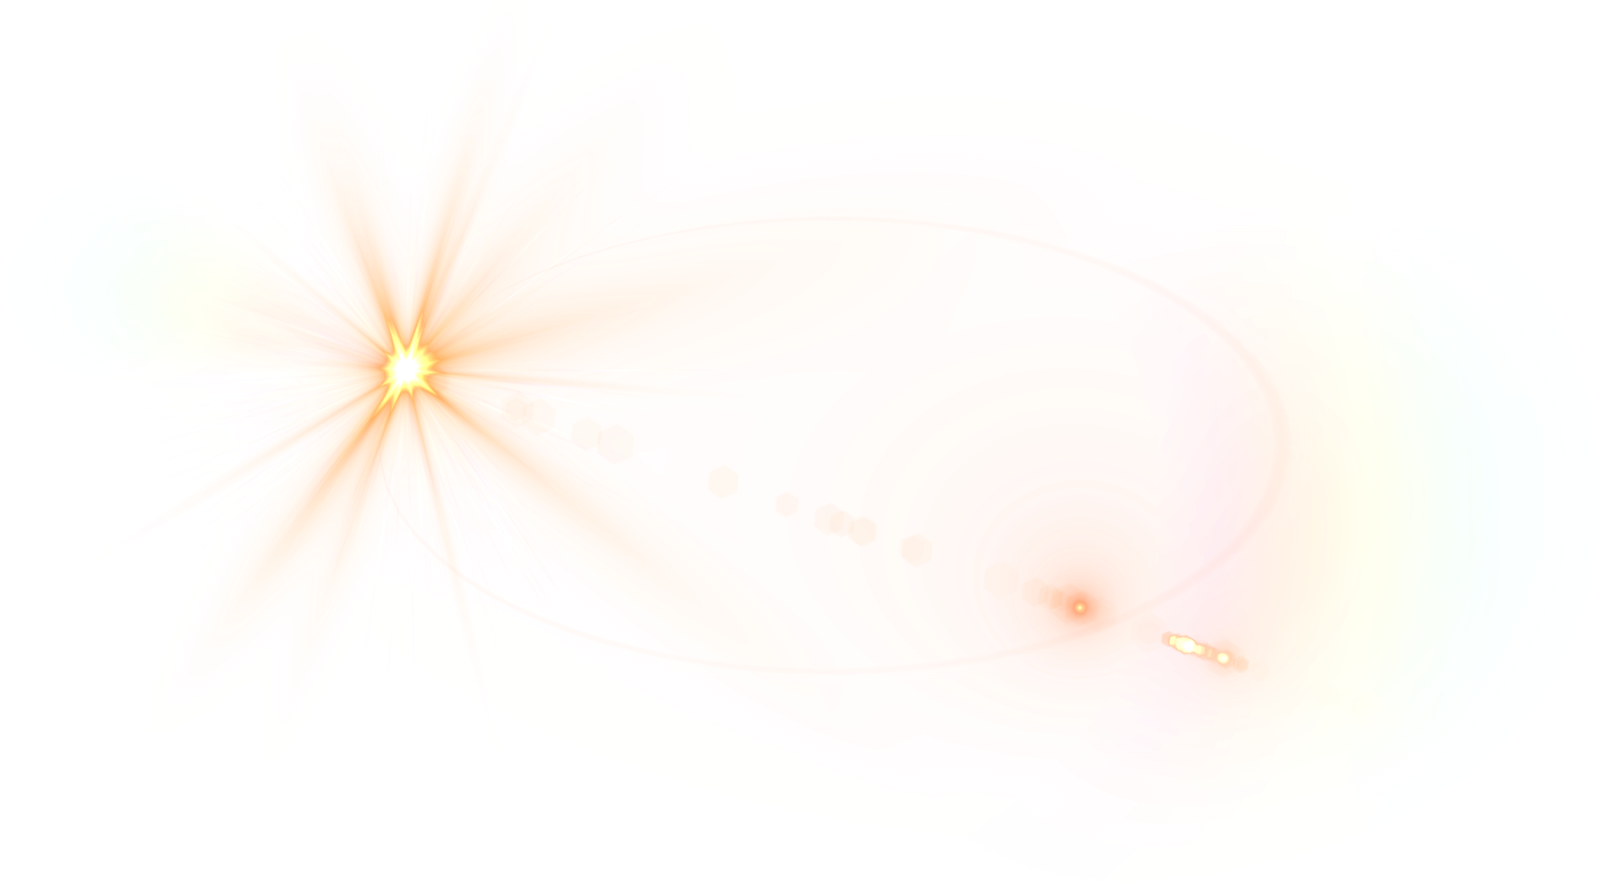 All New Lens Flare Png PnG Effects | Mafia Png World